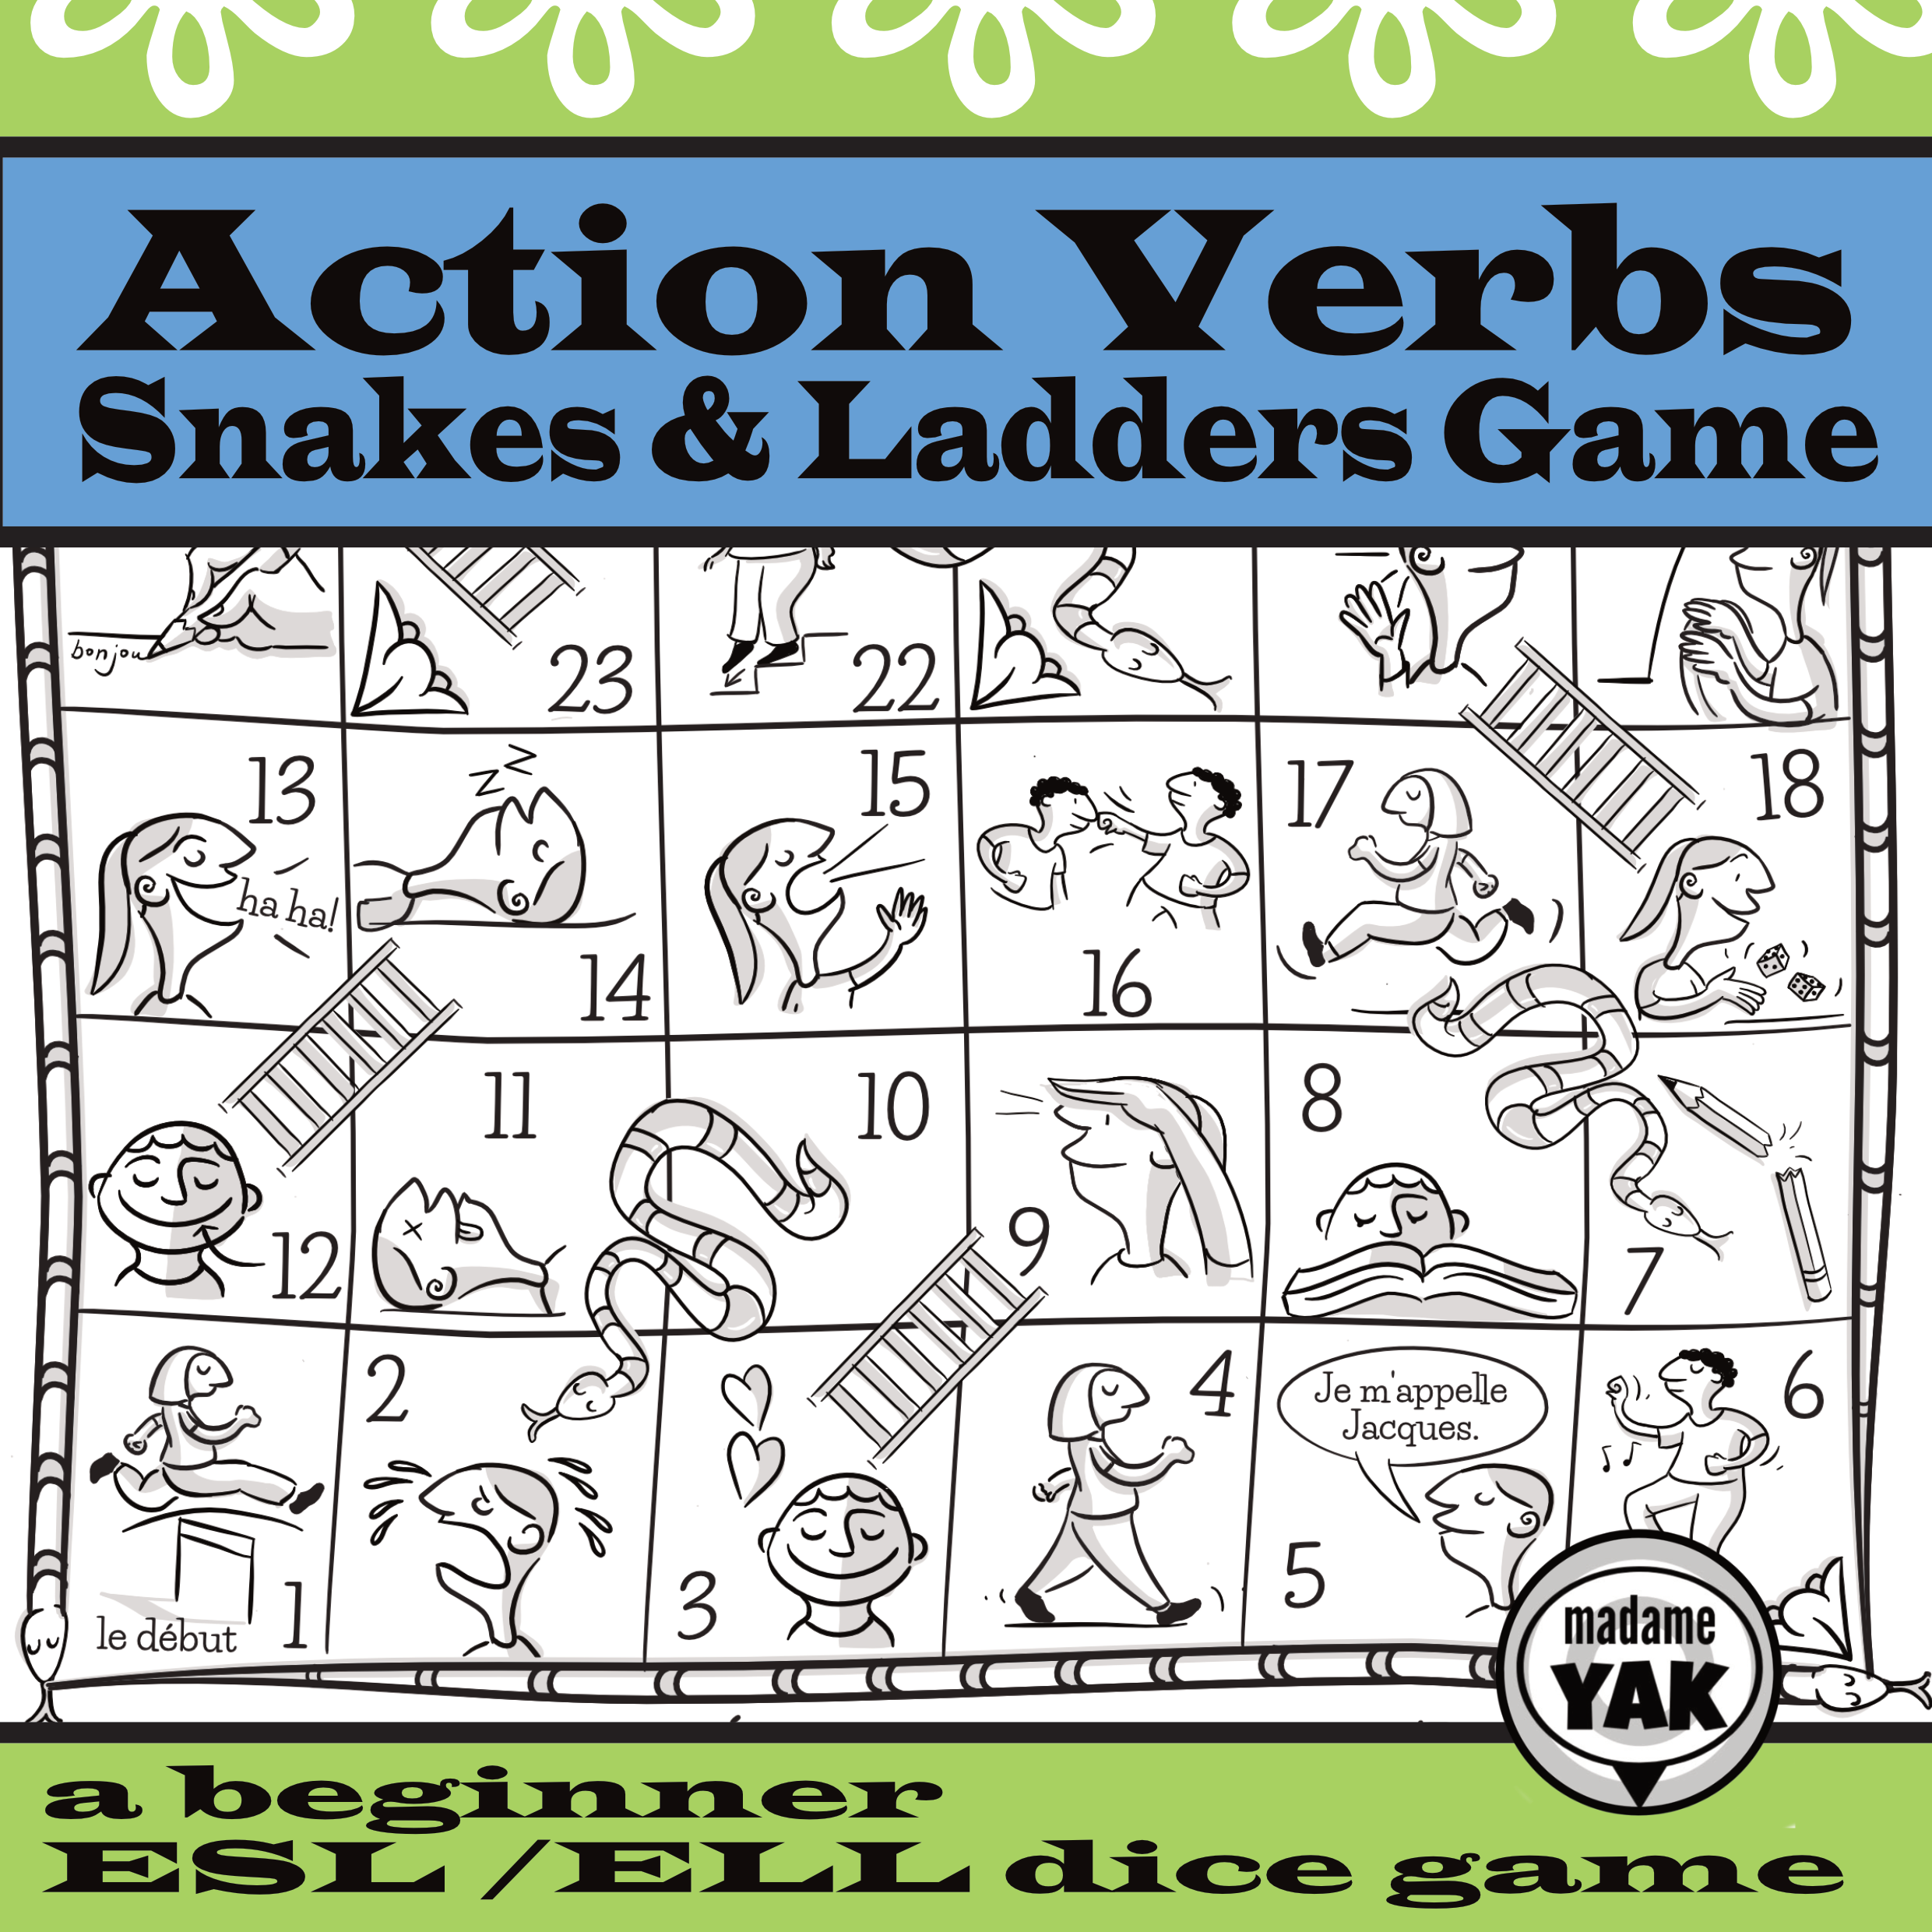 Action Verbs Esl Ell Snakes And Ladders Game Ladders Game Action Verbs Snakes And Ladders [ 2481 x 2481 Pixel ]